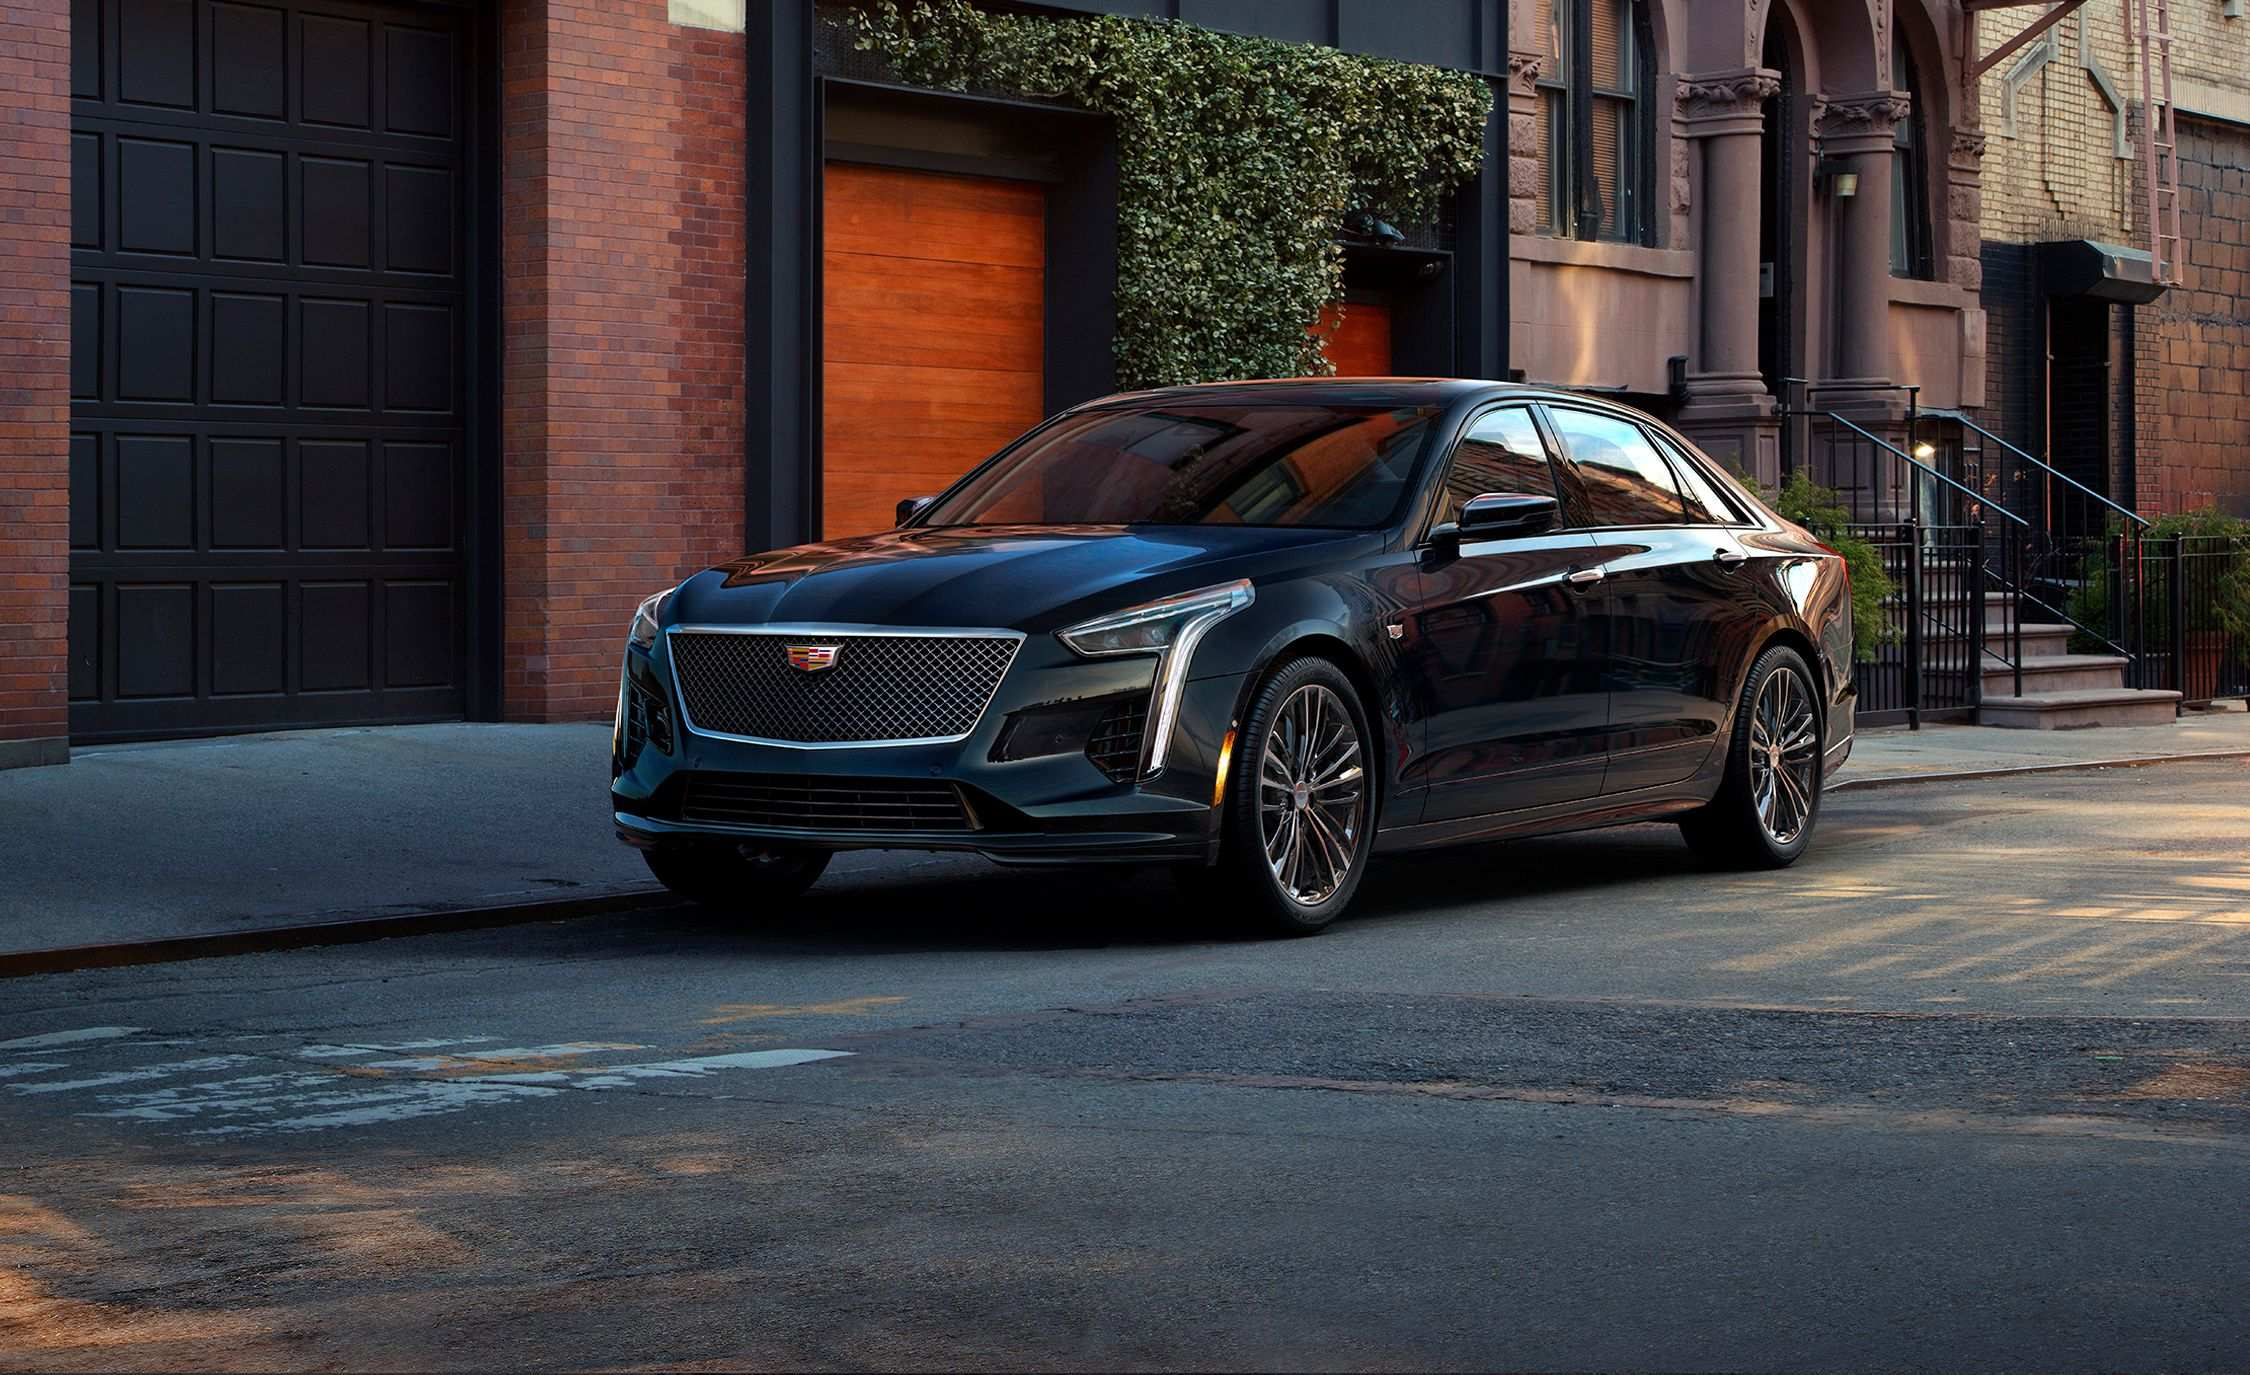 57 Best Review 2019 Cadillac Flagship Model by 2019 Cadillac Flagship